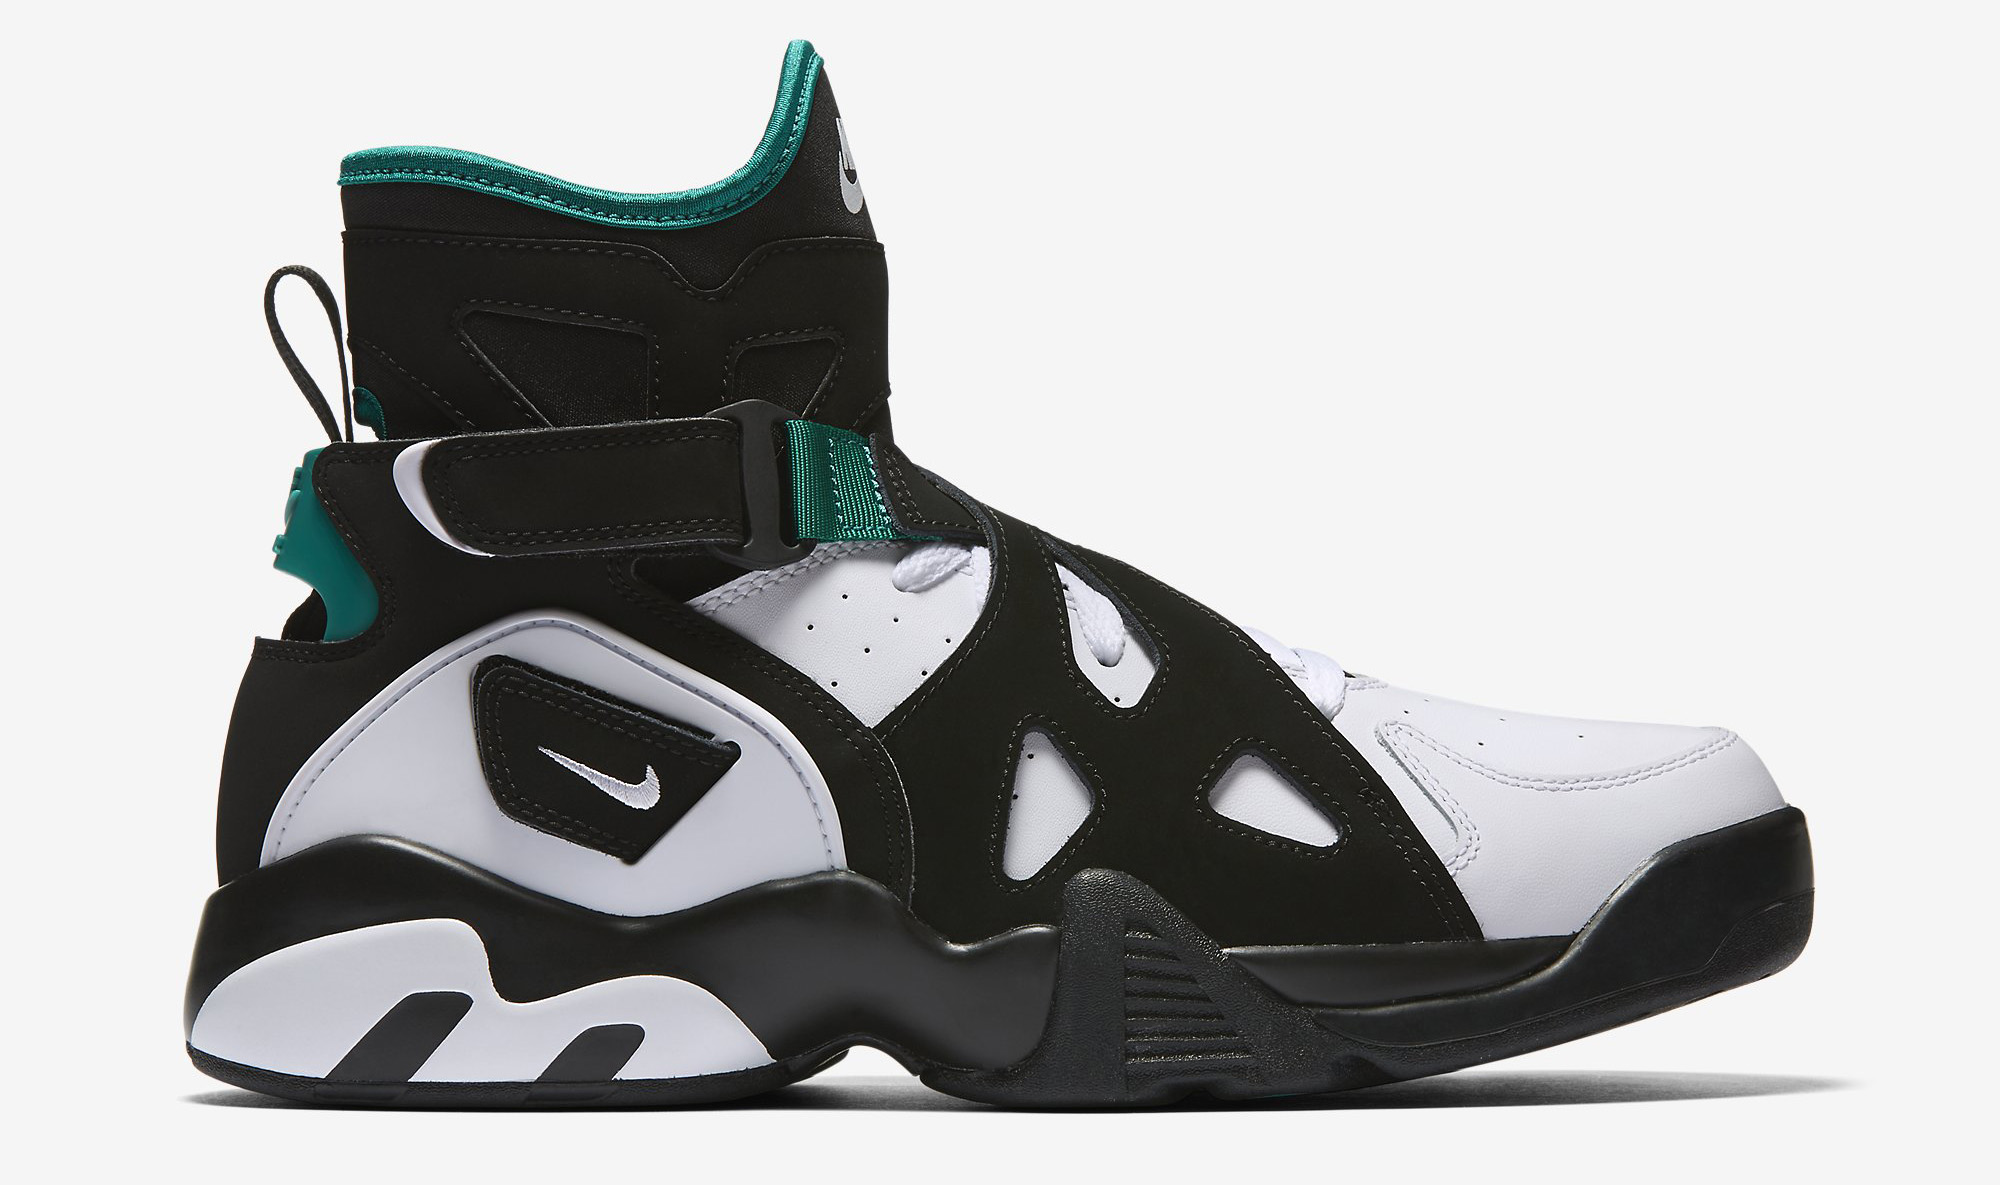 Nike Air Unlimited 889013-001 Profile